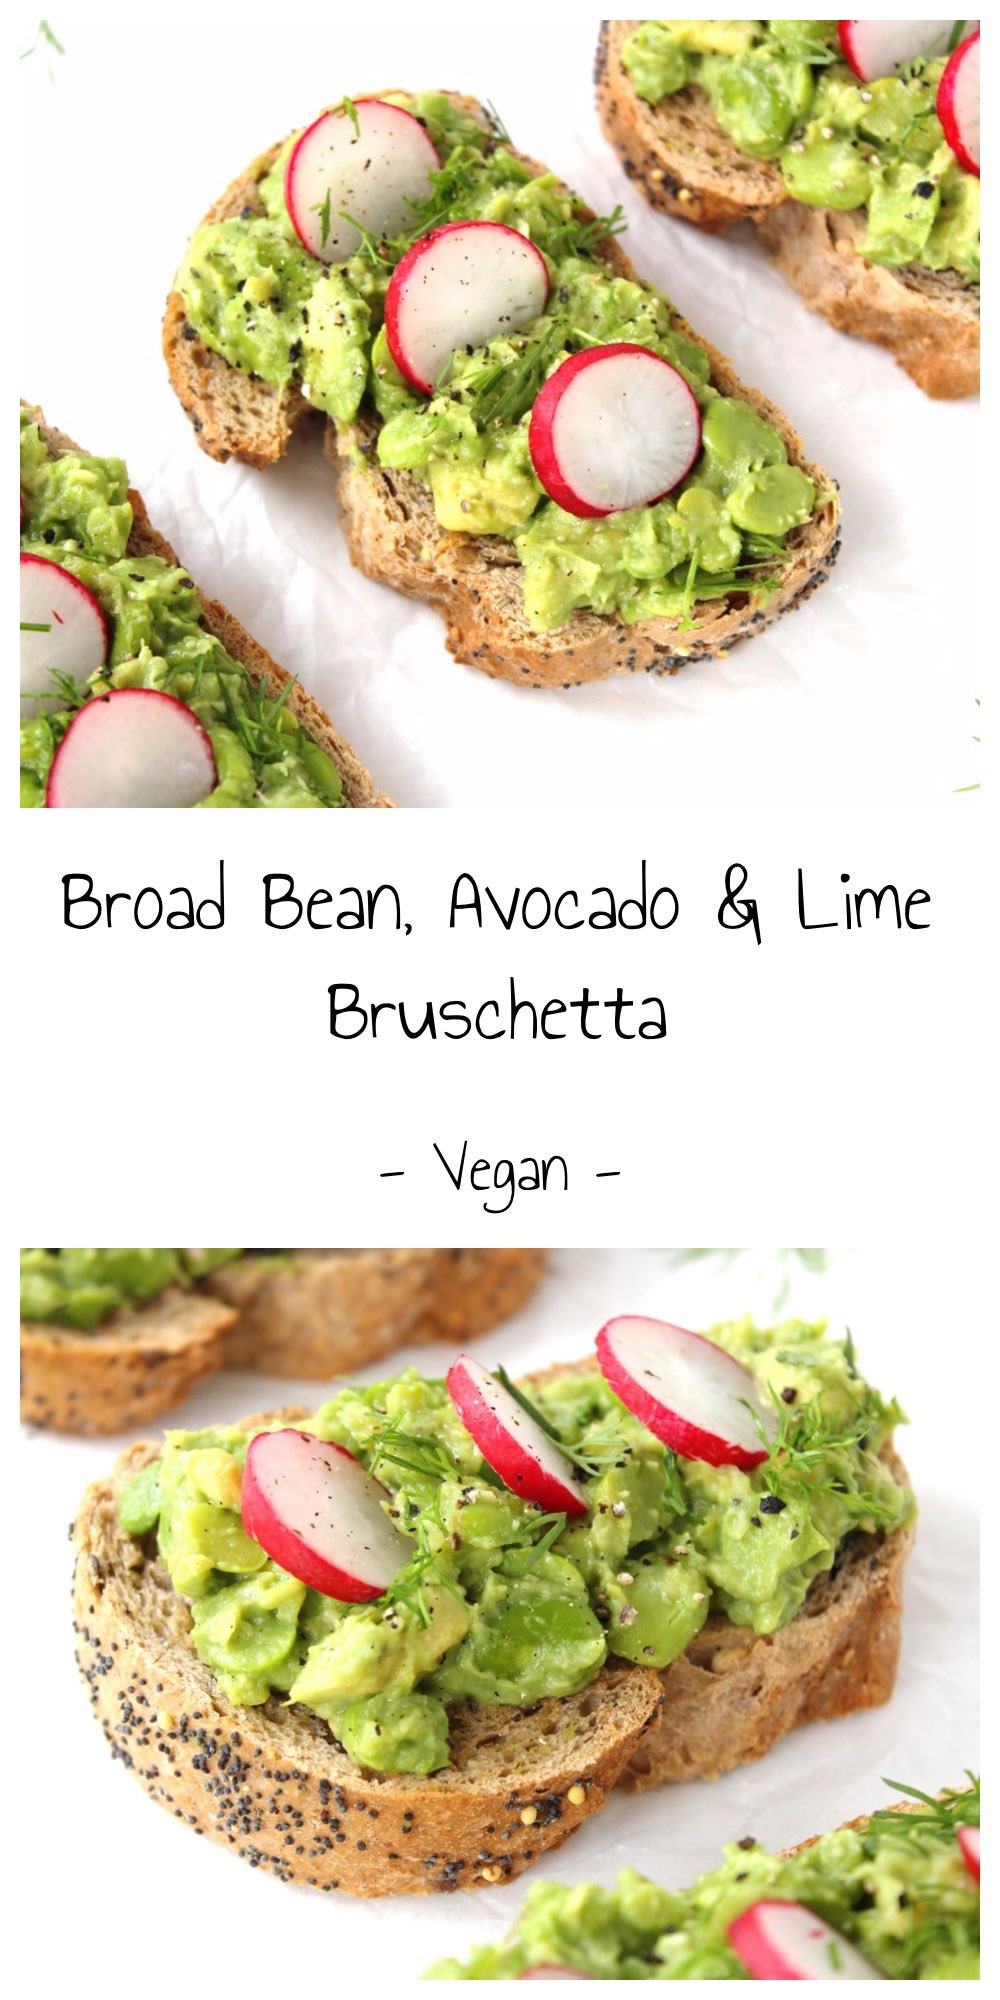 Broad Bean, Avocado and Lime Bruschetta